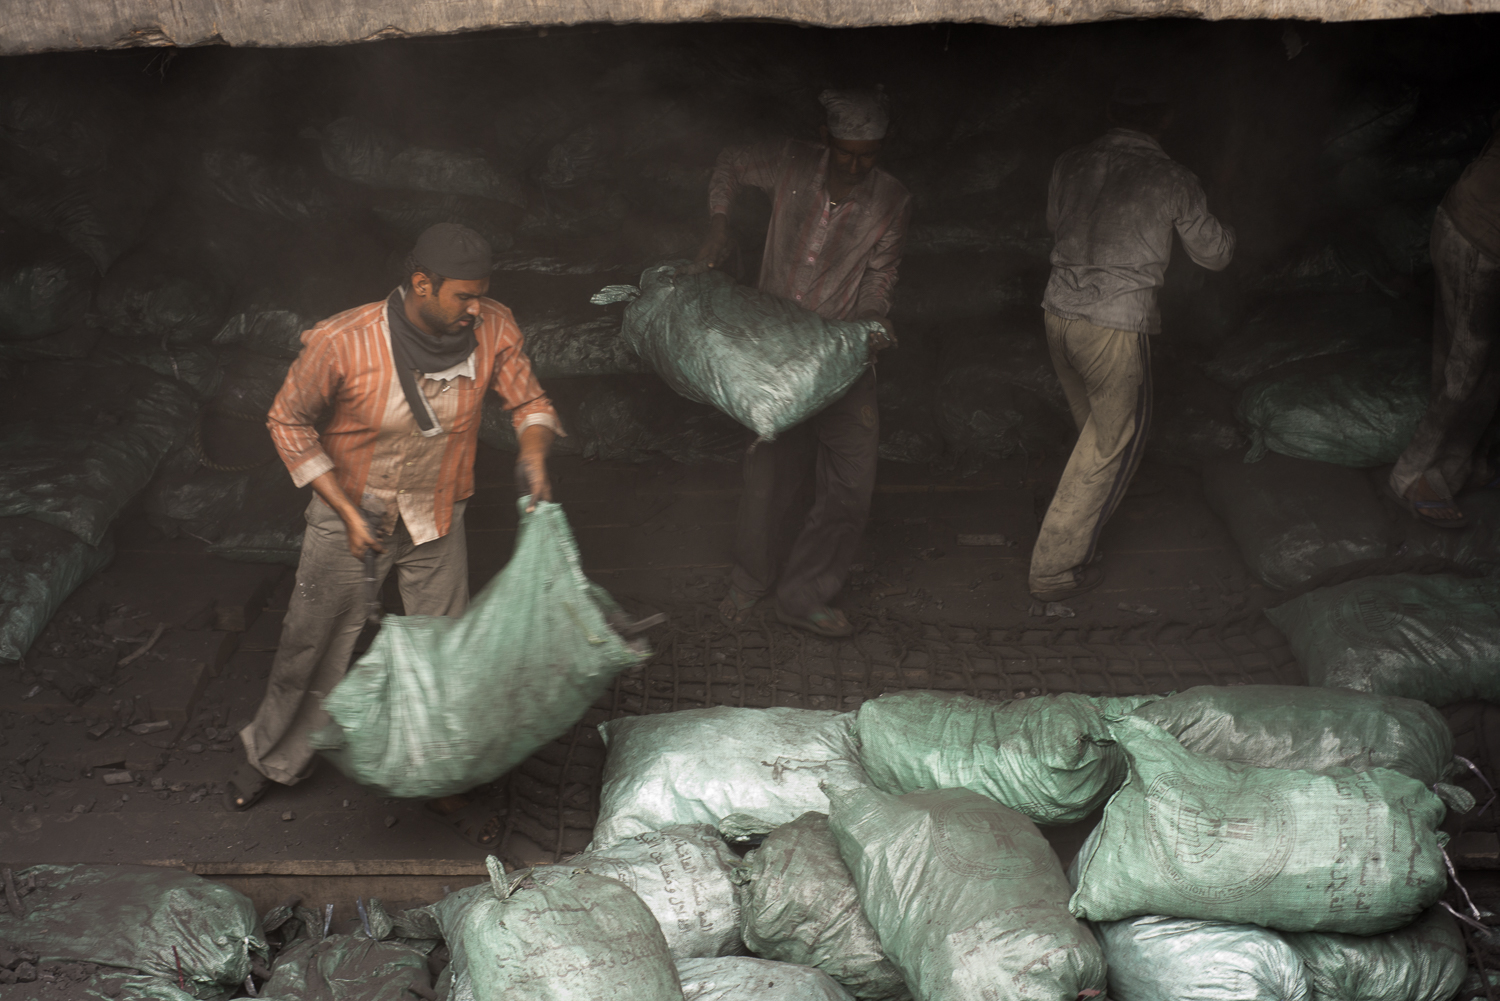 migrants-charcoal-workers-uae-jo-kearney-photography-video-travel-photography.jpg